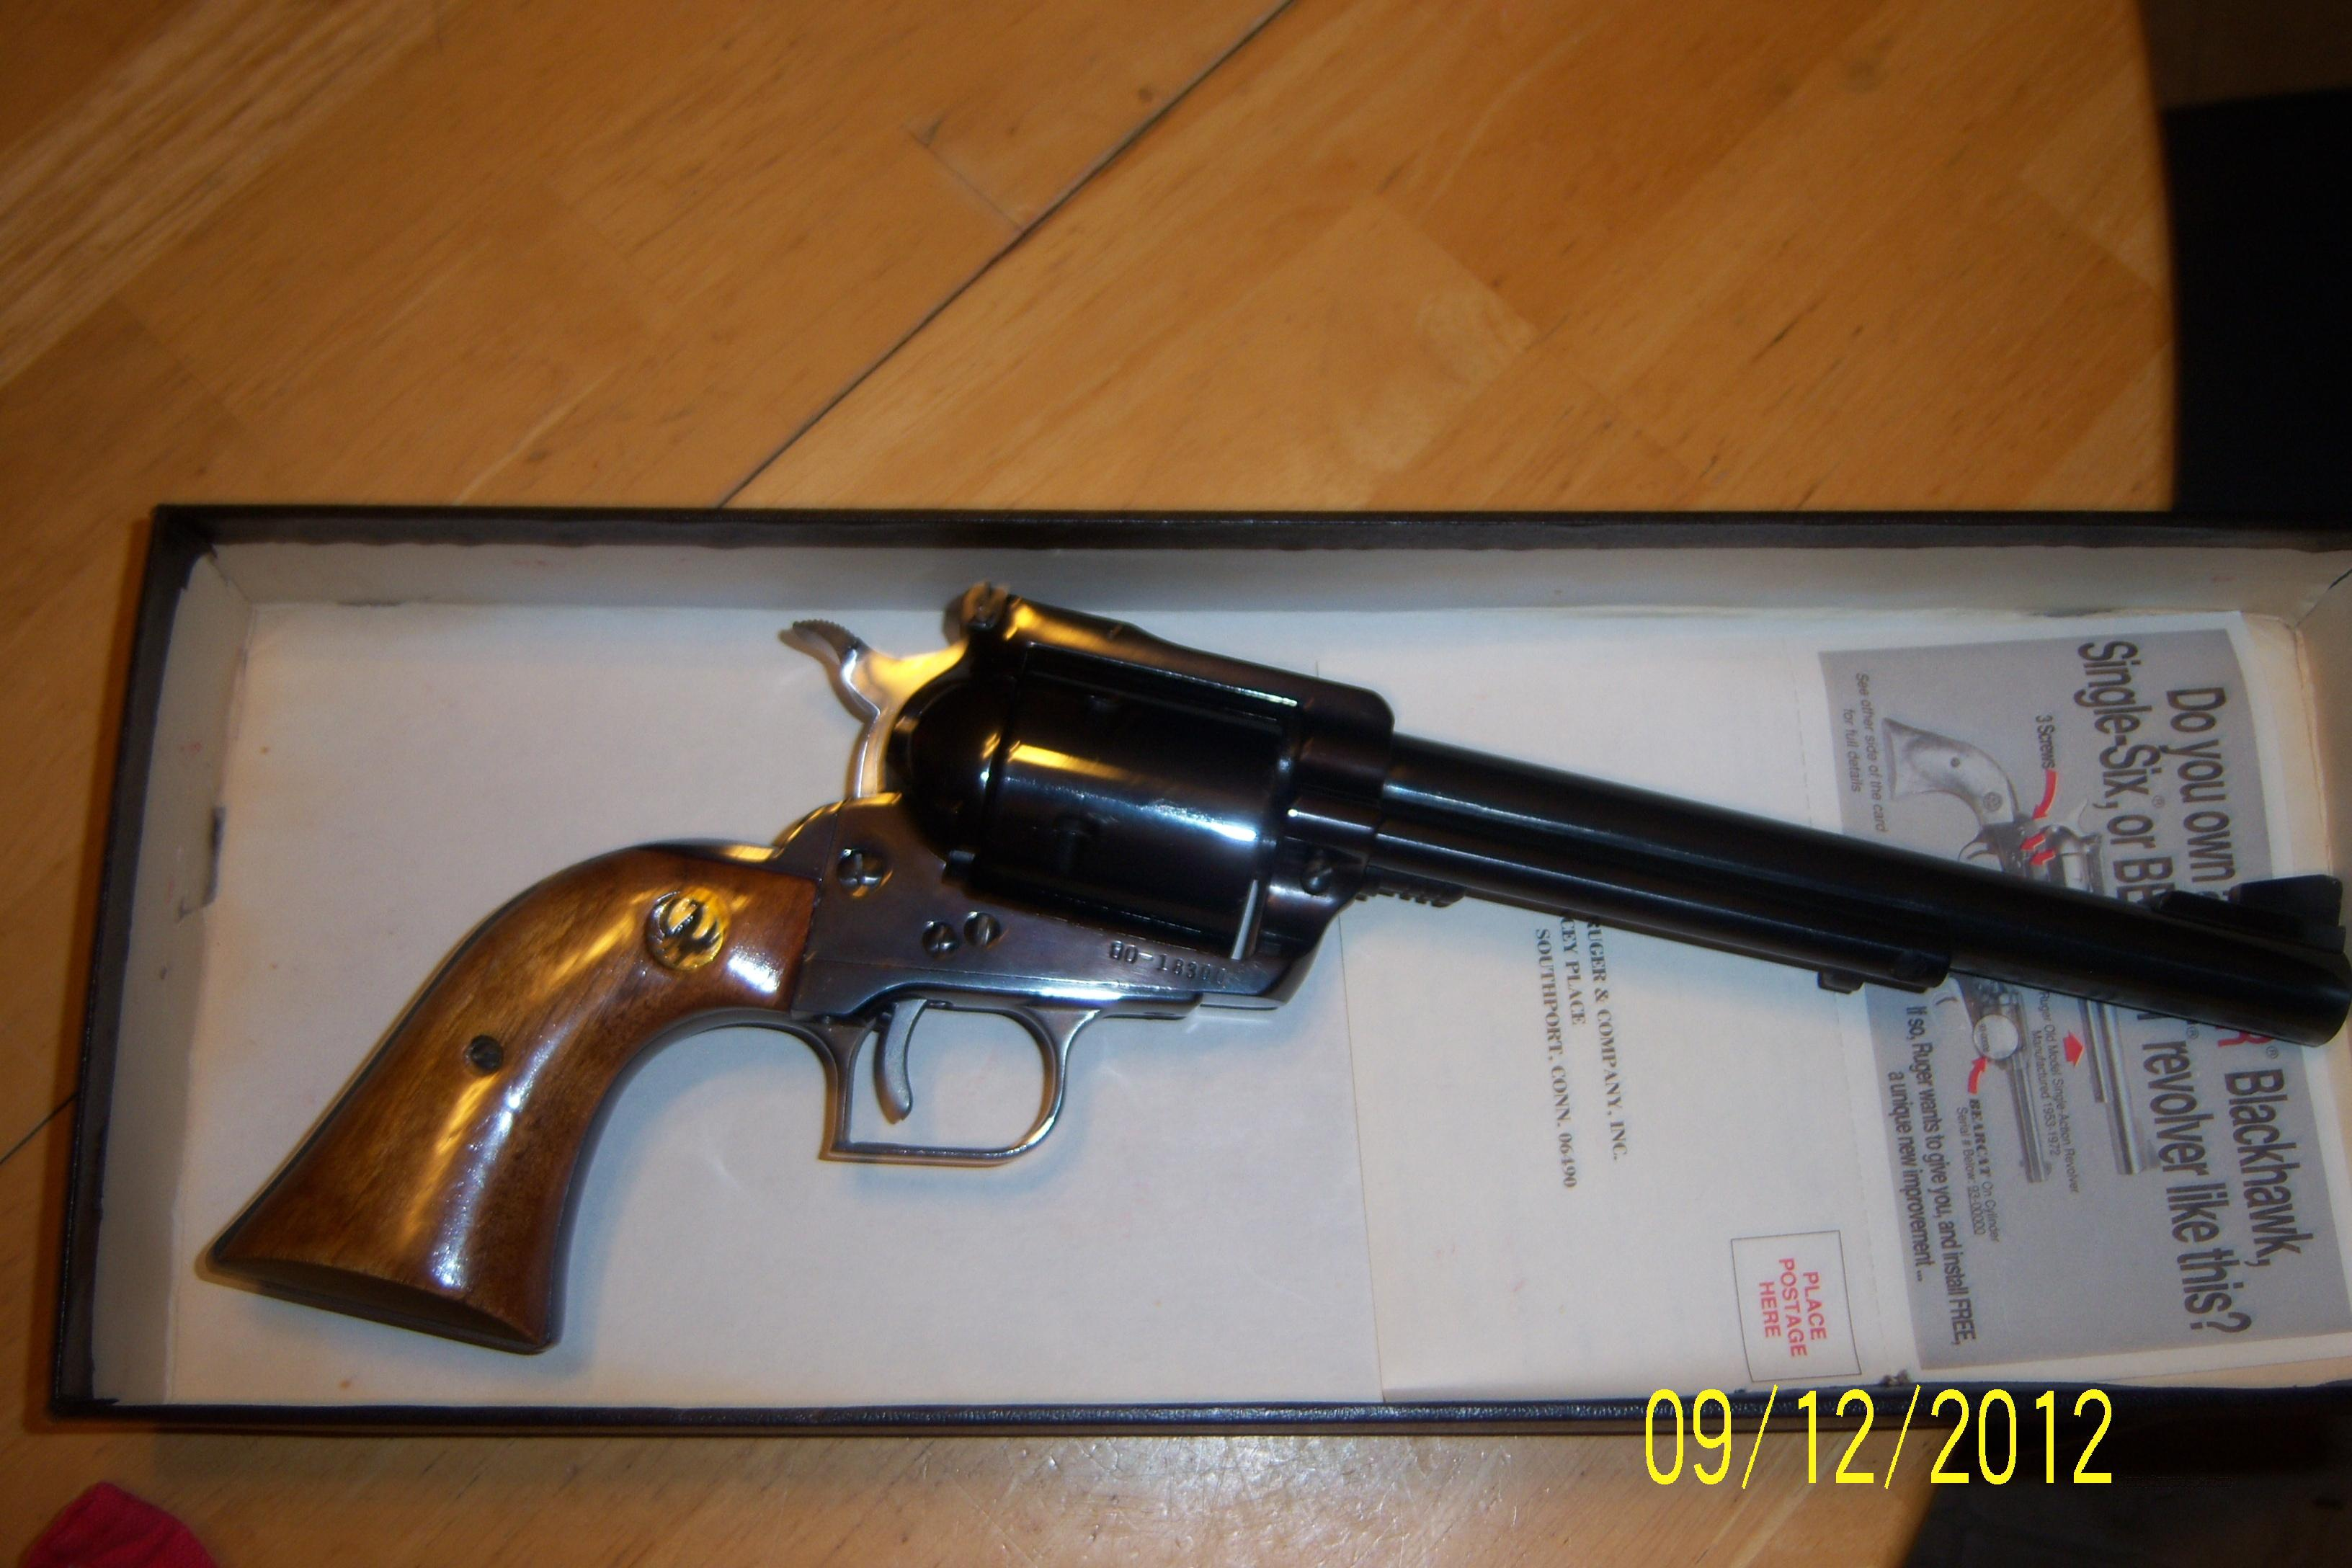 Ruger Super Blackhawk, Old Model, 44 Magnum  Guns > Pistols > Ruger Single Action Revolvers > Blackhawk Type